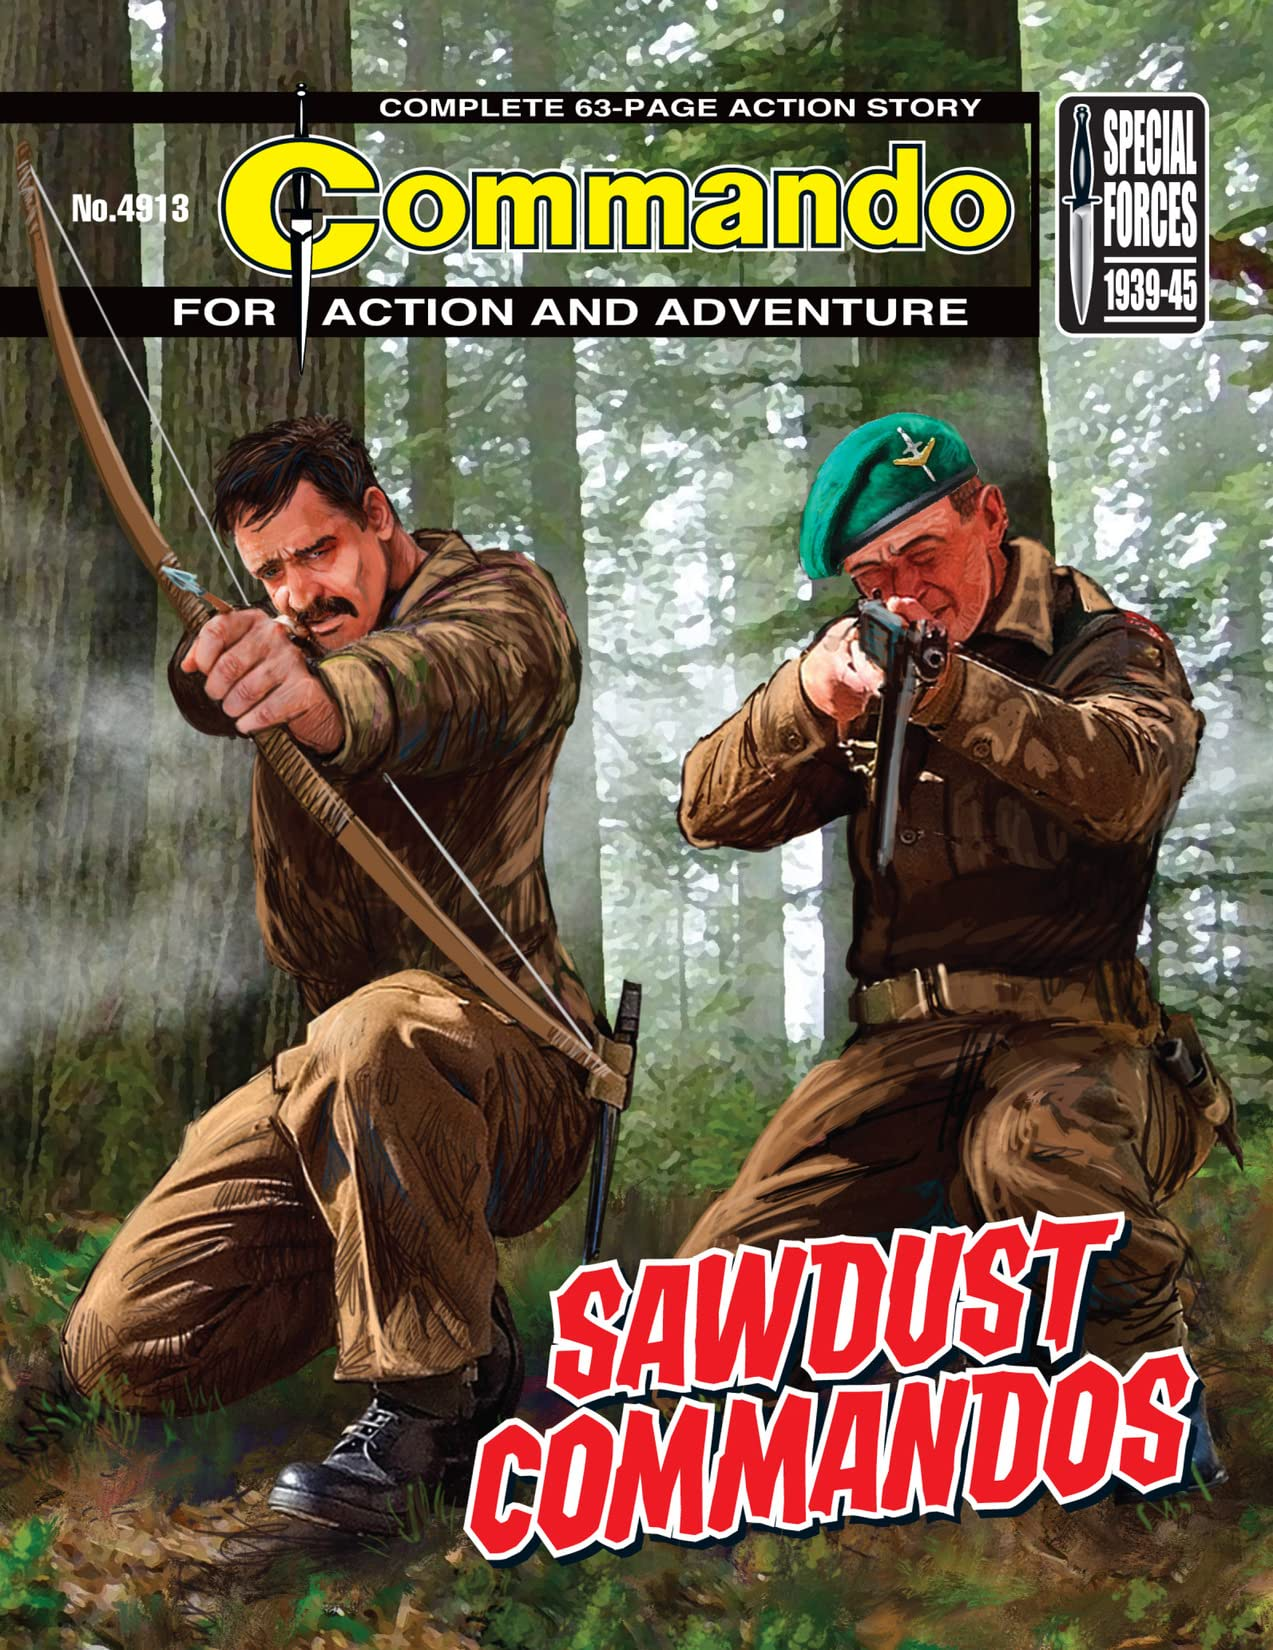 Commando #4913: Sawdust Commandos